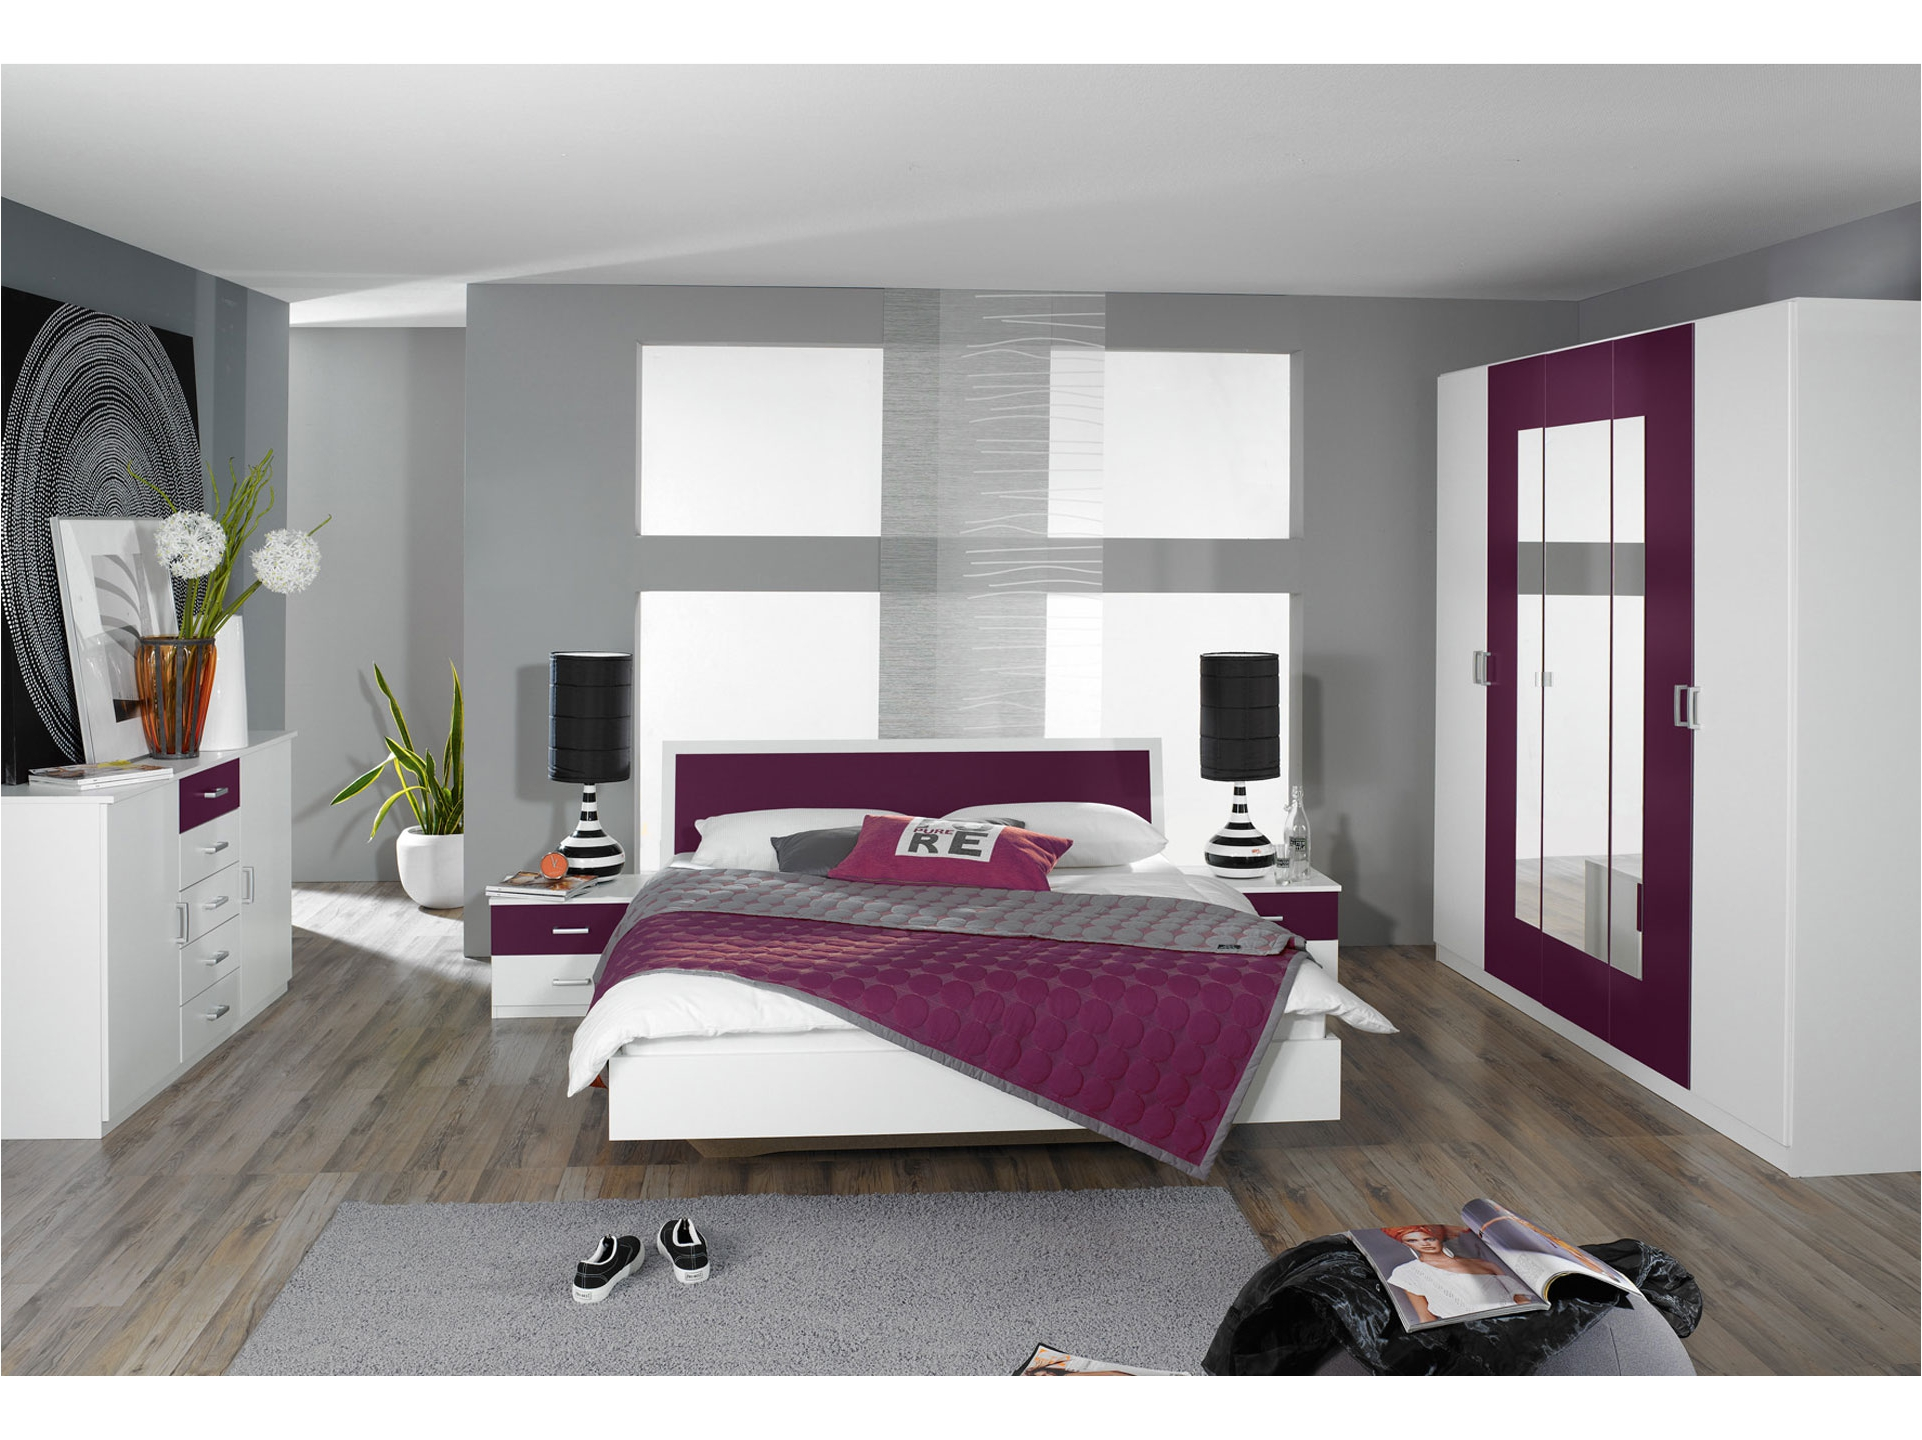 D co chambre gris et prune for Deco salon prune